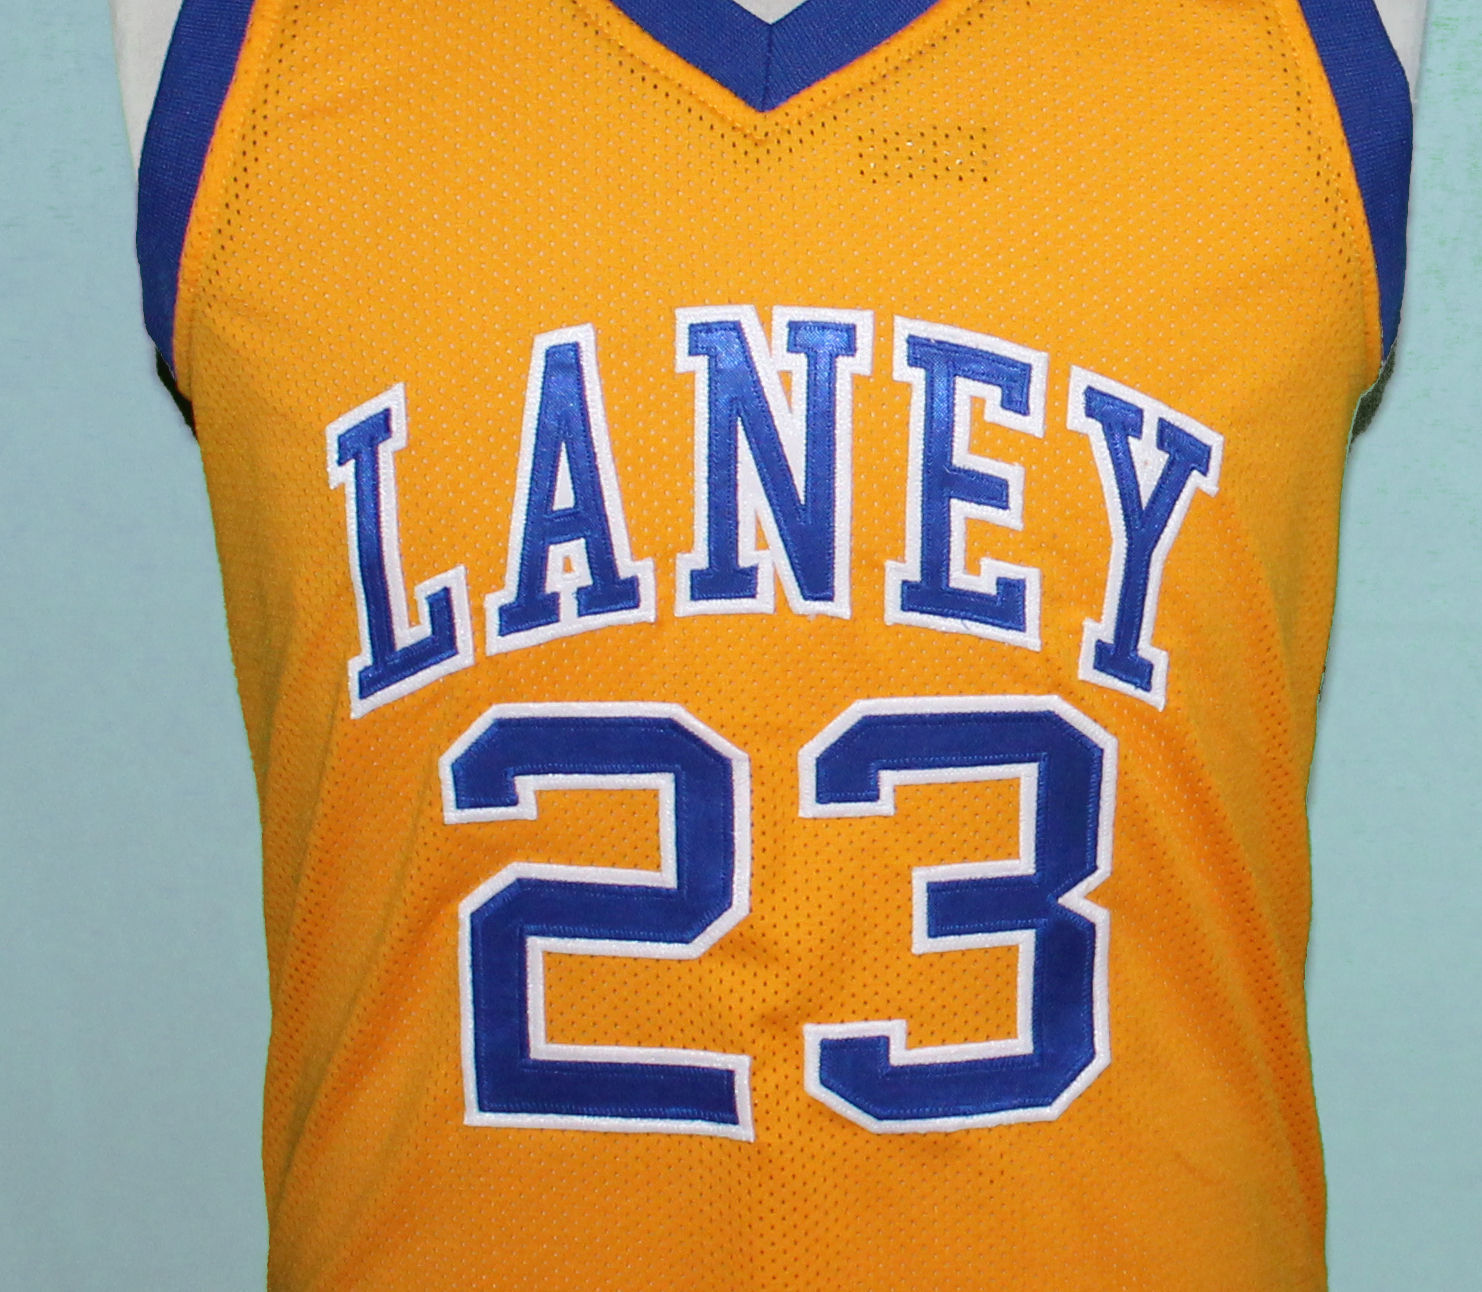 c563cfa89bee6b S l1600. S l1600. Previous. MICHAEL JORDAN  23 LANEY HIGH SCHOOL JERSEY  AUTHORIZED YELLOW SEWN NEW ANY SIZE